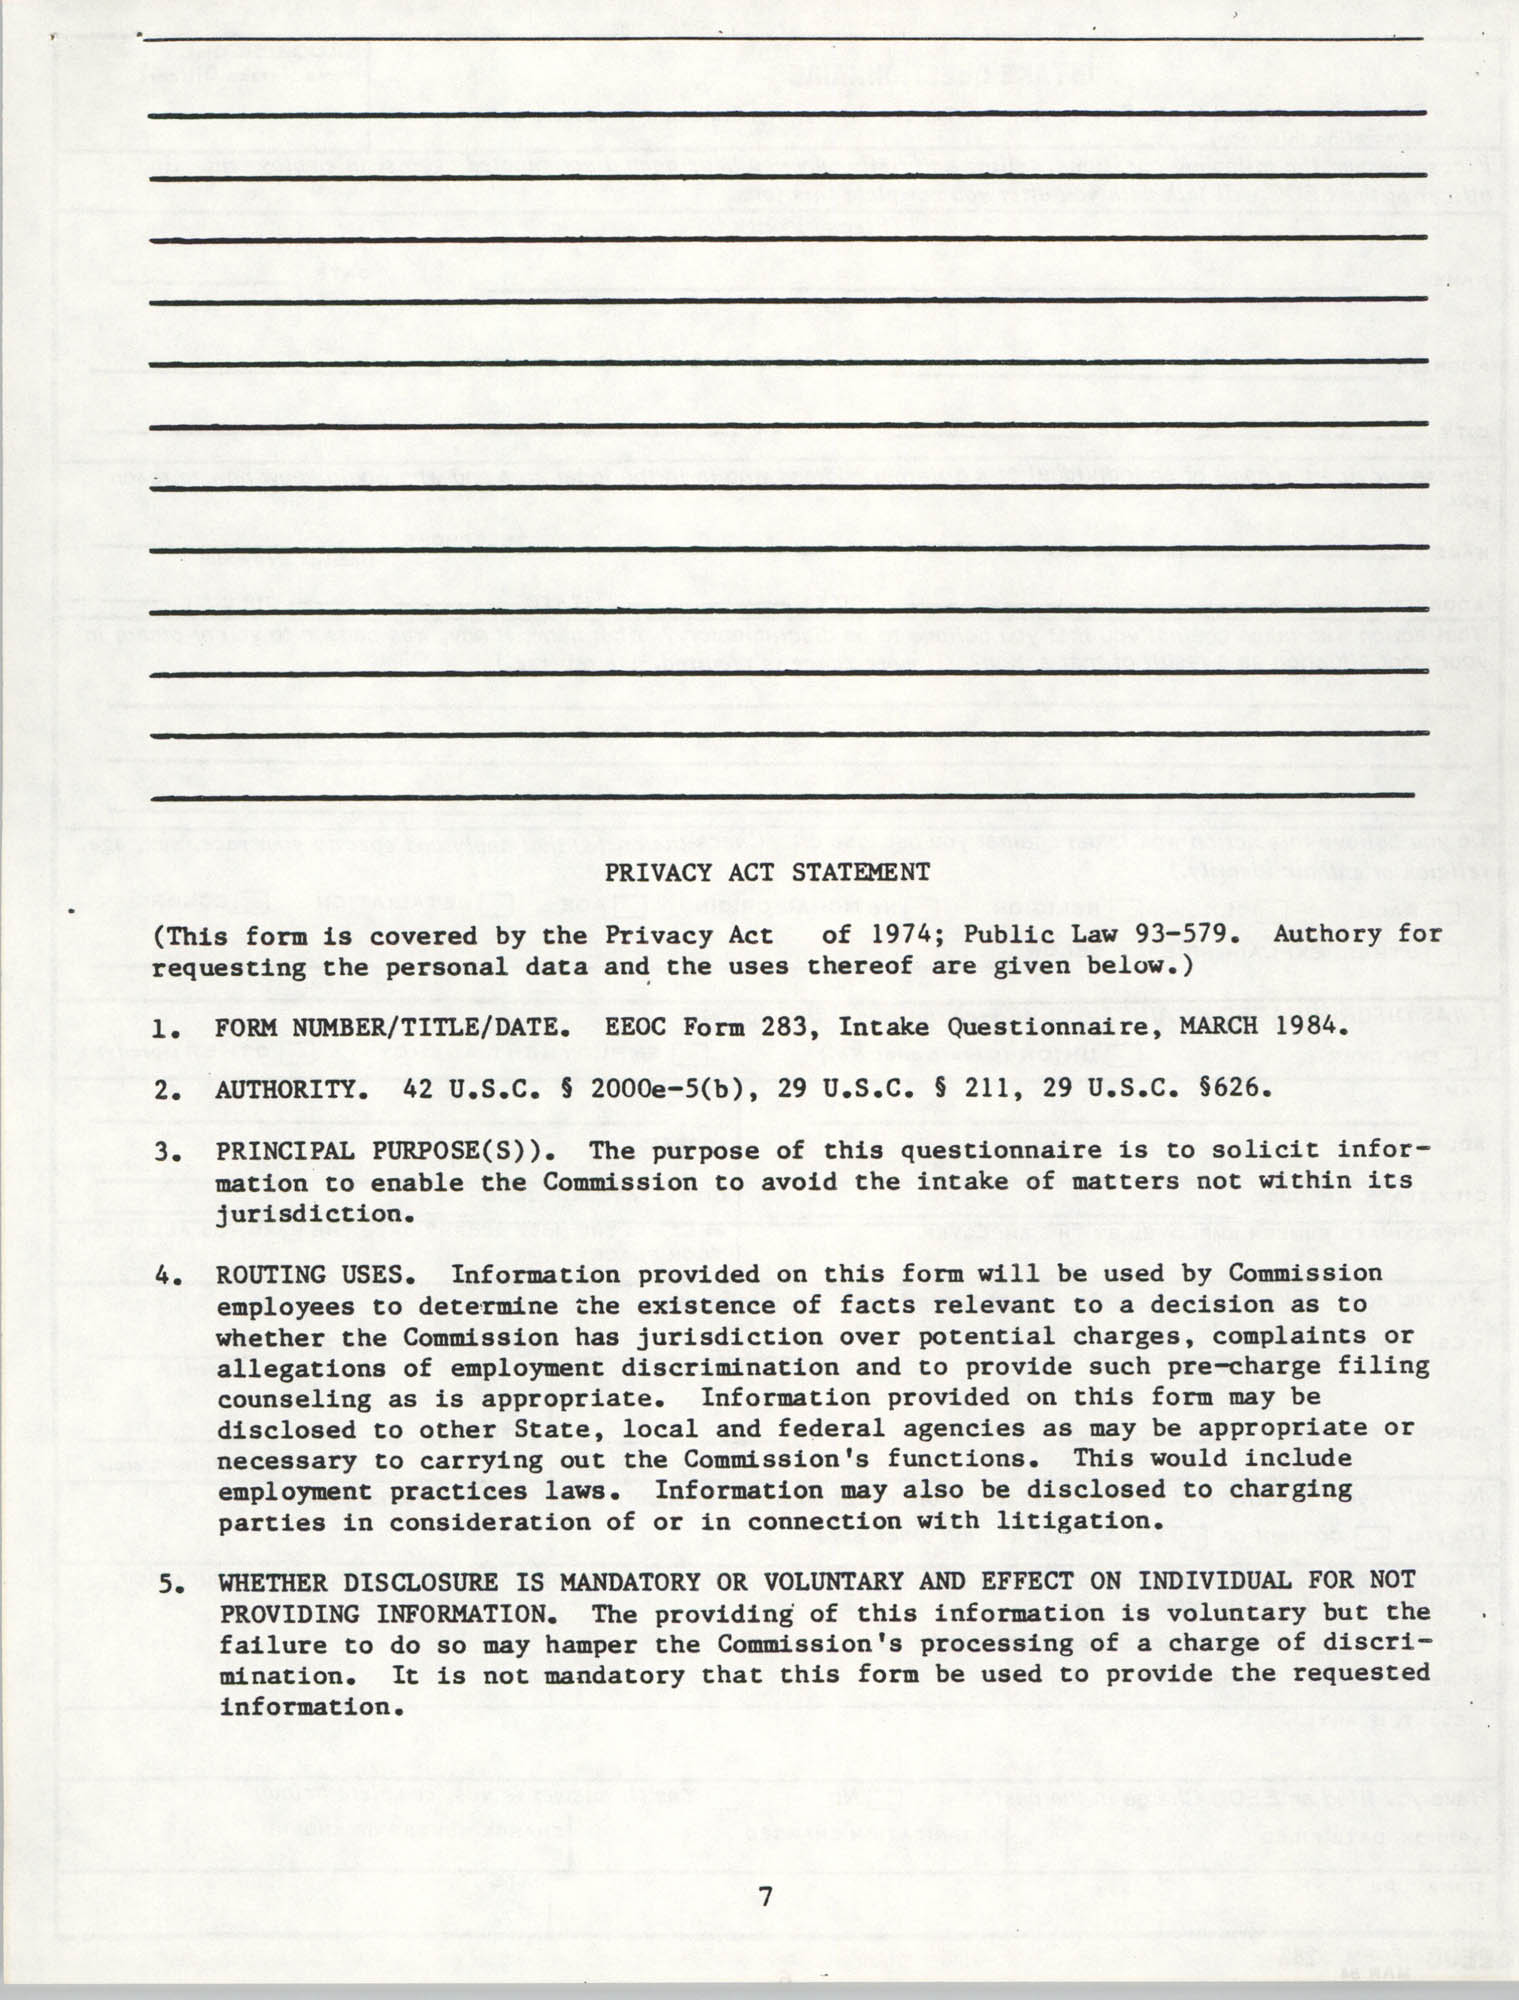 Handbook for Addressing Discrimination Complaints, NAACP Labor and Industry Committees, Page 7